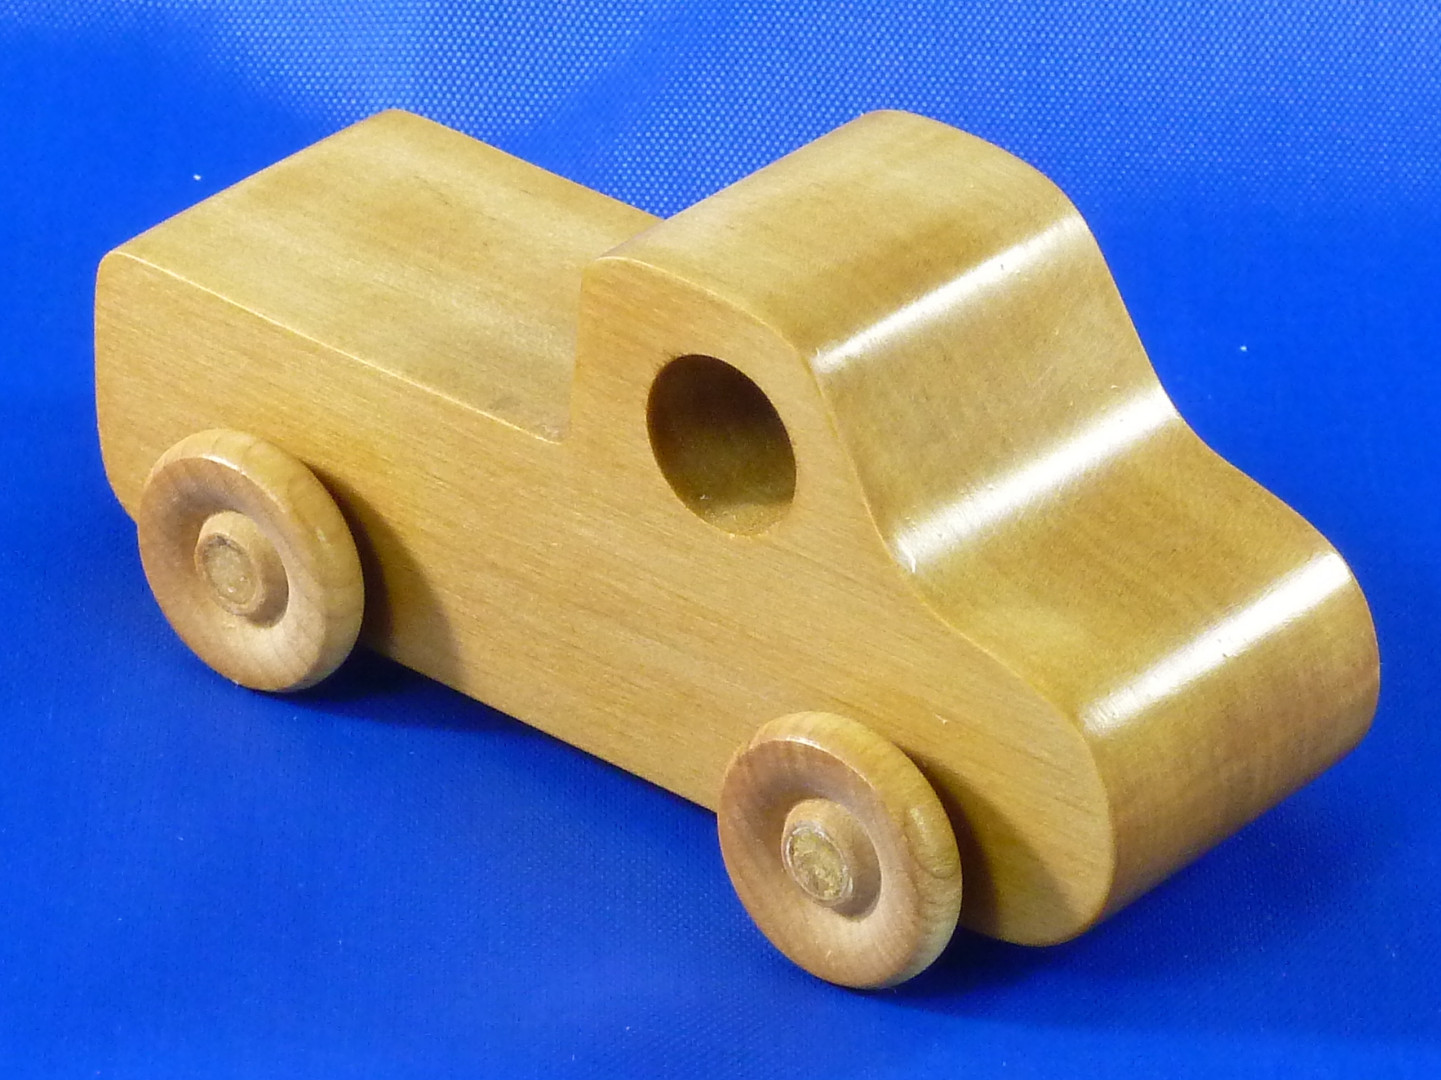 20161126-083139-Etsy Wood Play Pal Pickup Truck - Poplar - Brushed Satin Polyurethane.jpg